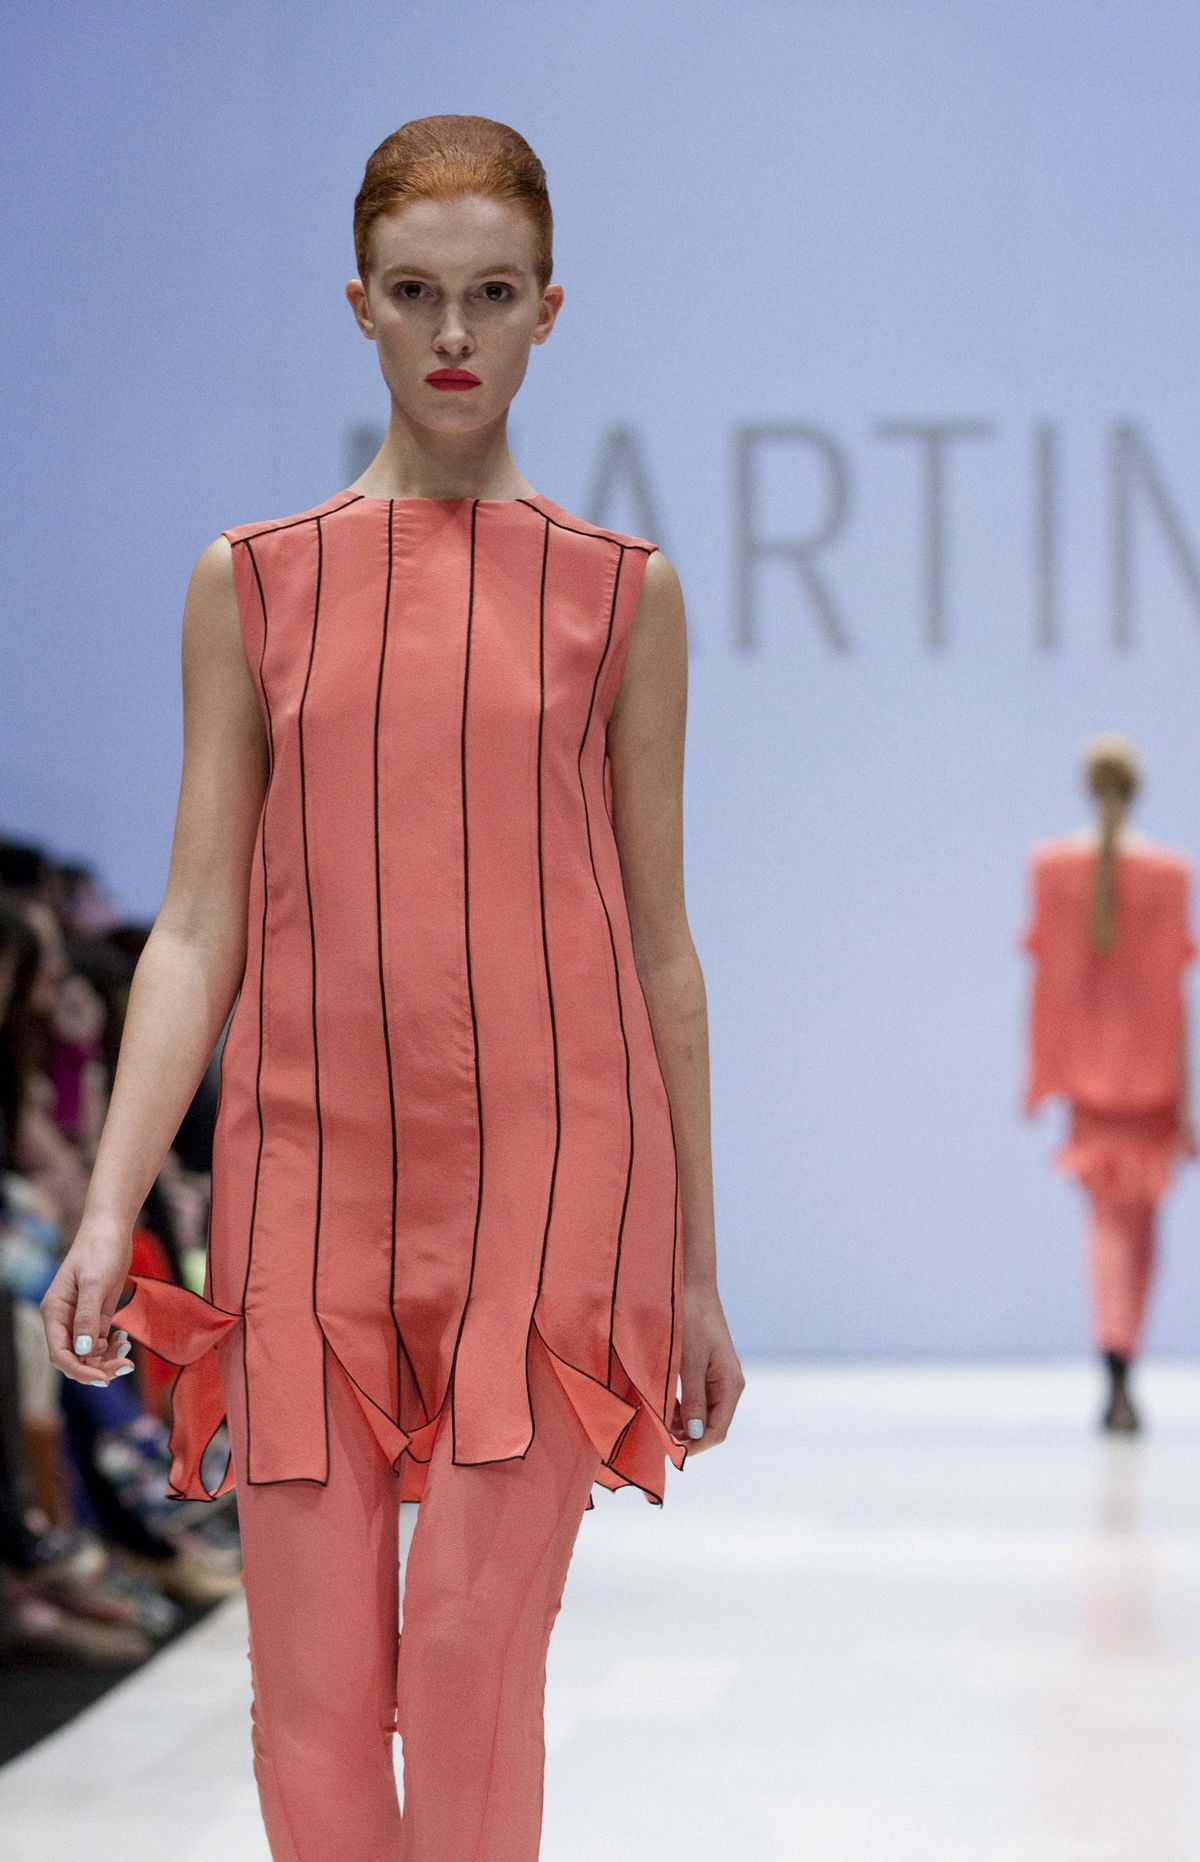 Unexpected shades of coral and lilac were a breath of fresh air among fall collections that had featured murky shades throughout the day, but the colour blocking that drove home the Mondrian inspiration felt overthought at times and took the focus off the stronger pieces.